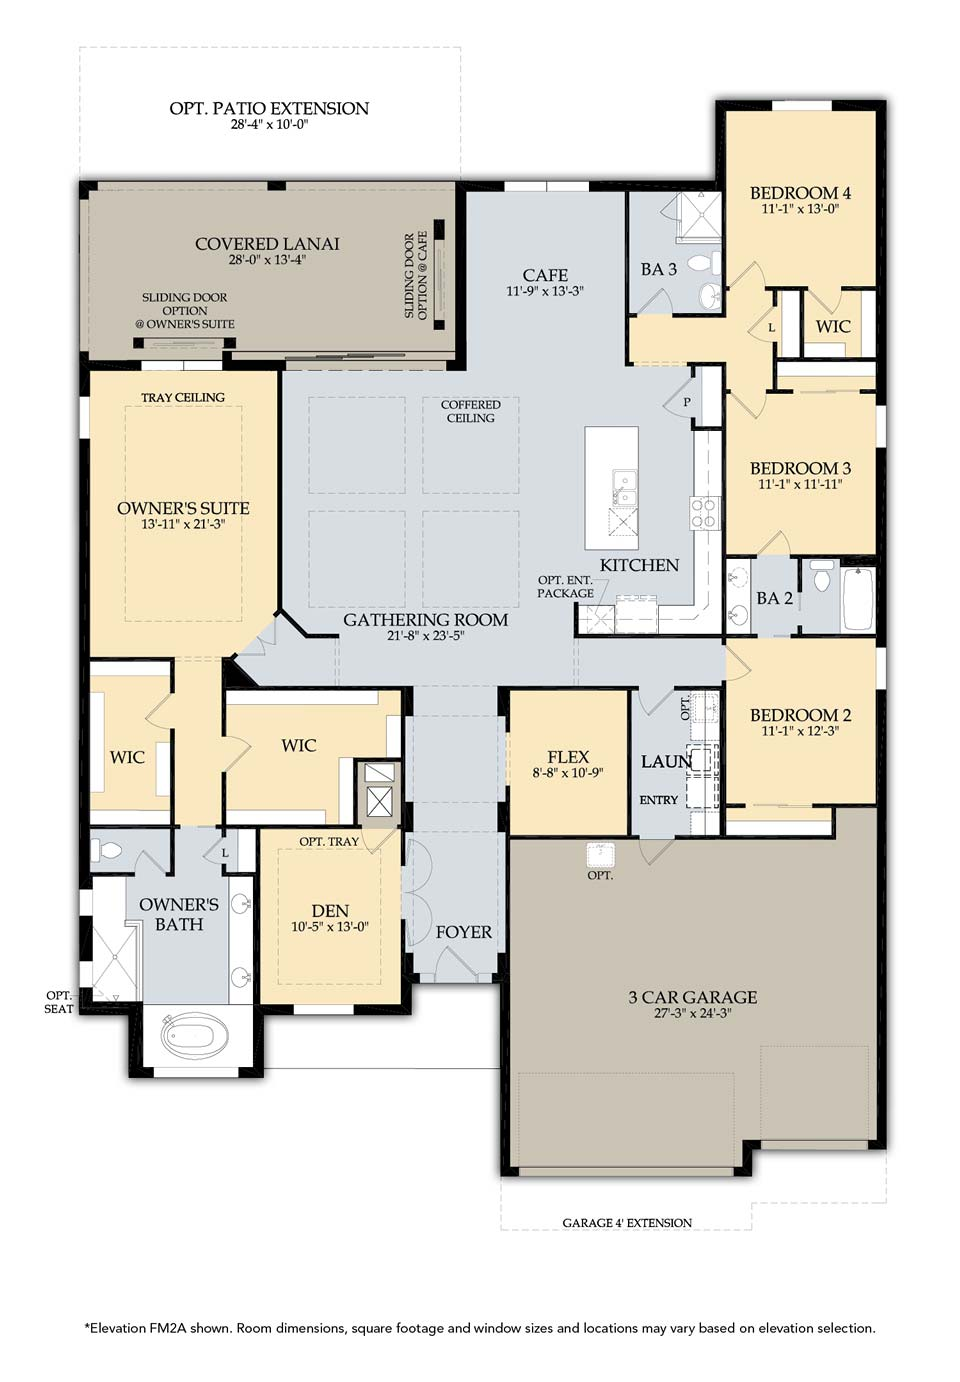 Pulte homes floor plans Home plan